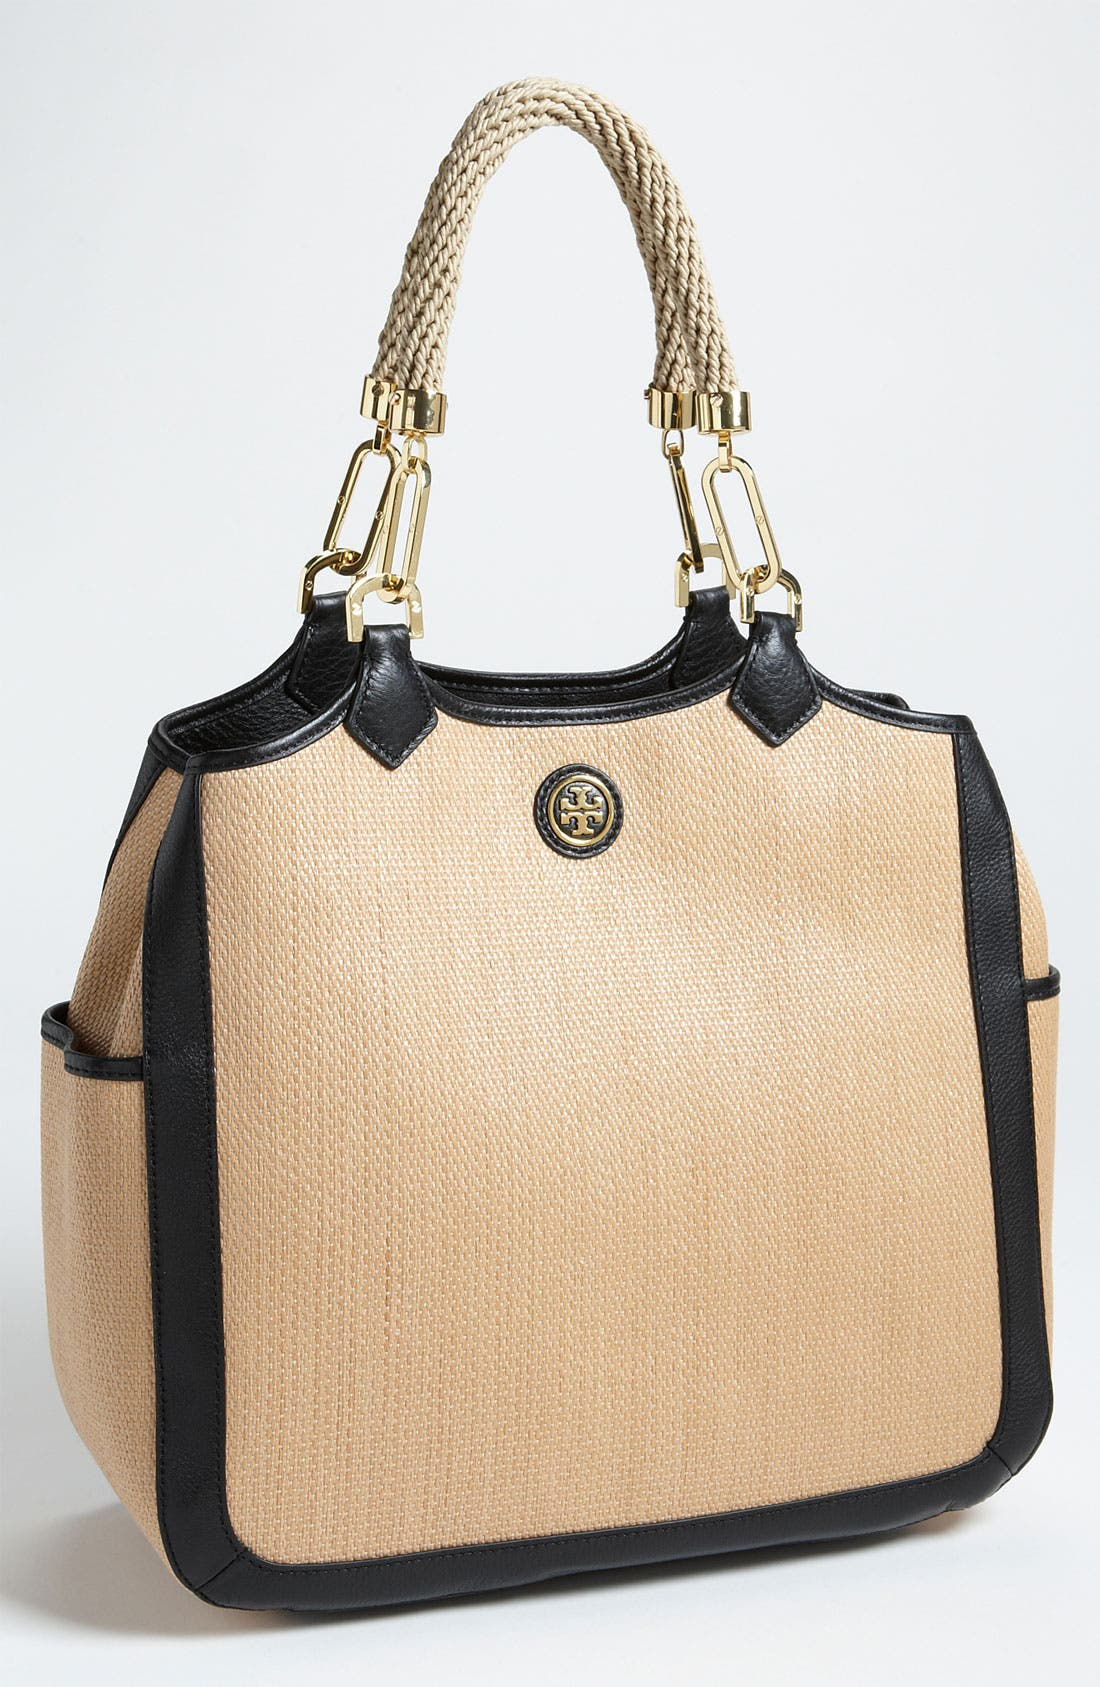 Main Image - Tory Burch 'Channing' Tote